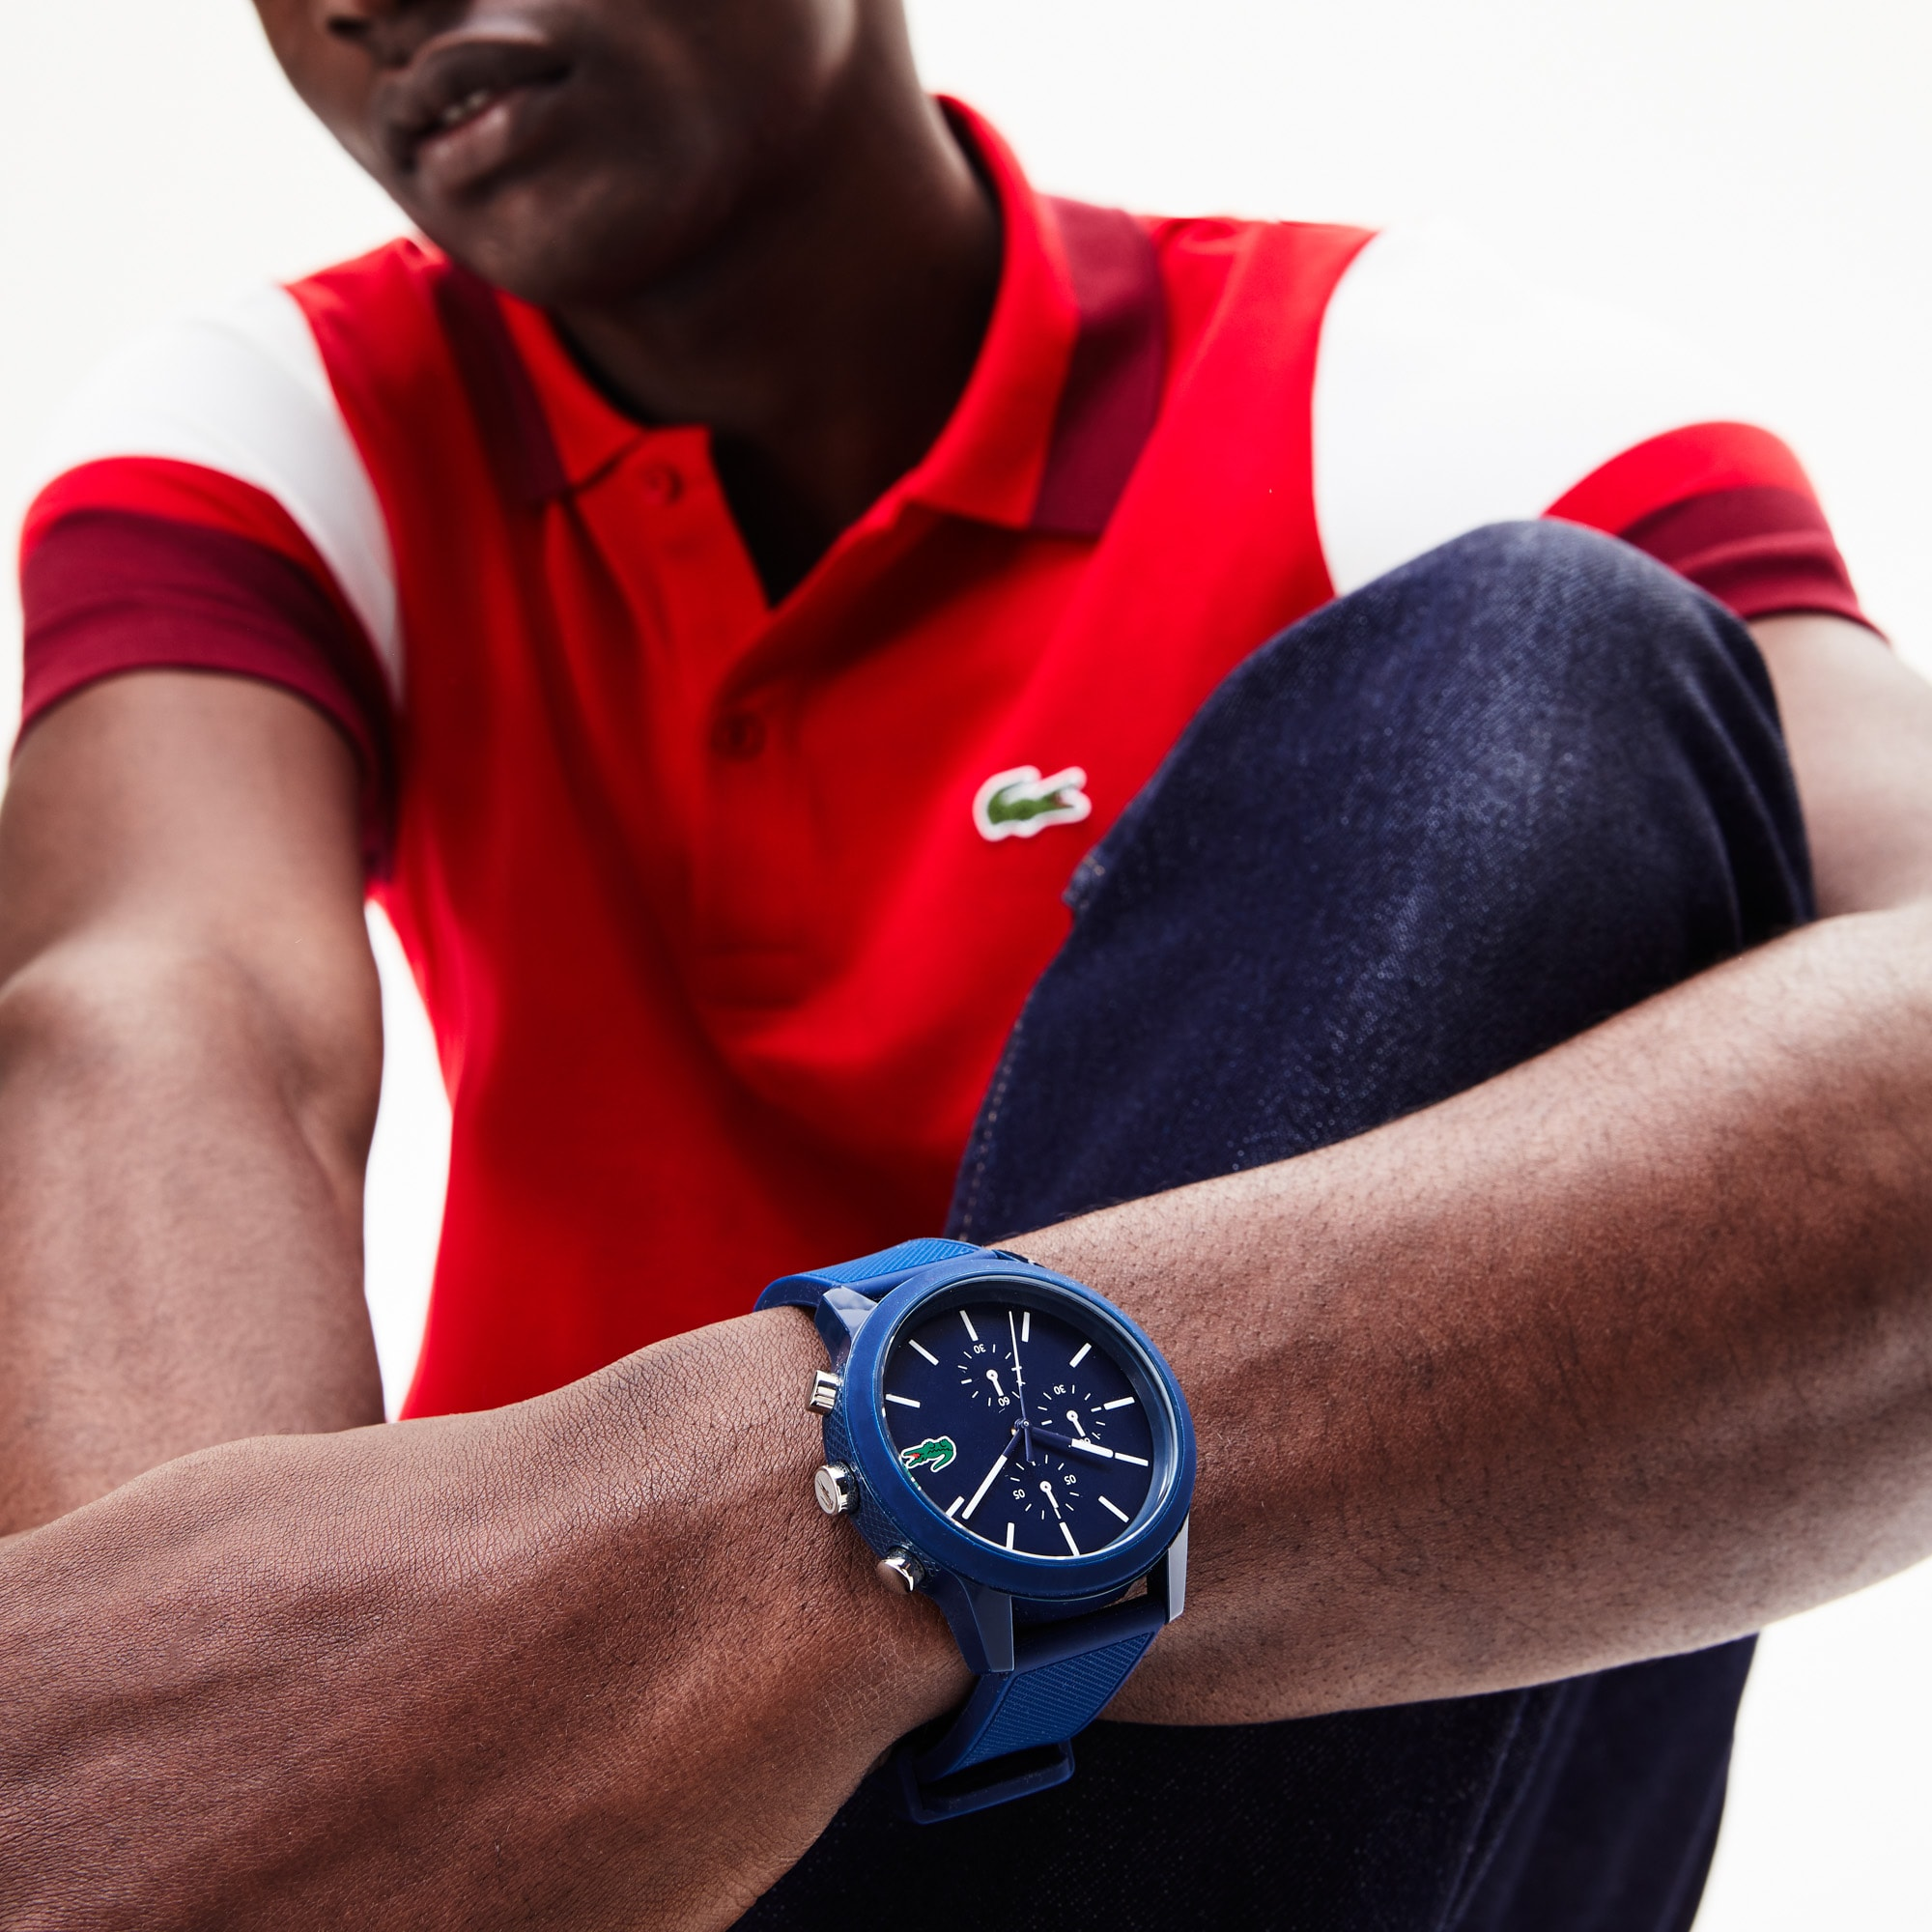 Men's Lacoste 12.12 Chronograph Watch with Blue Silicone Strap